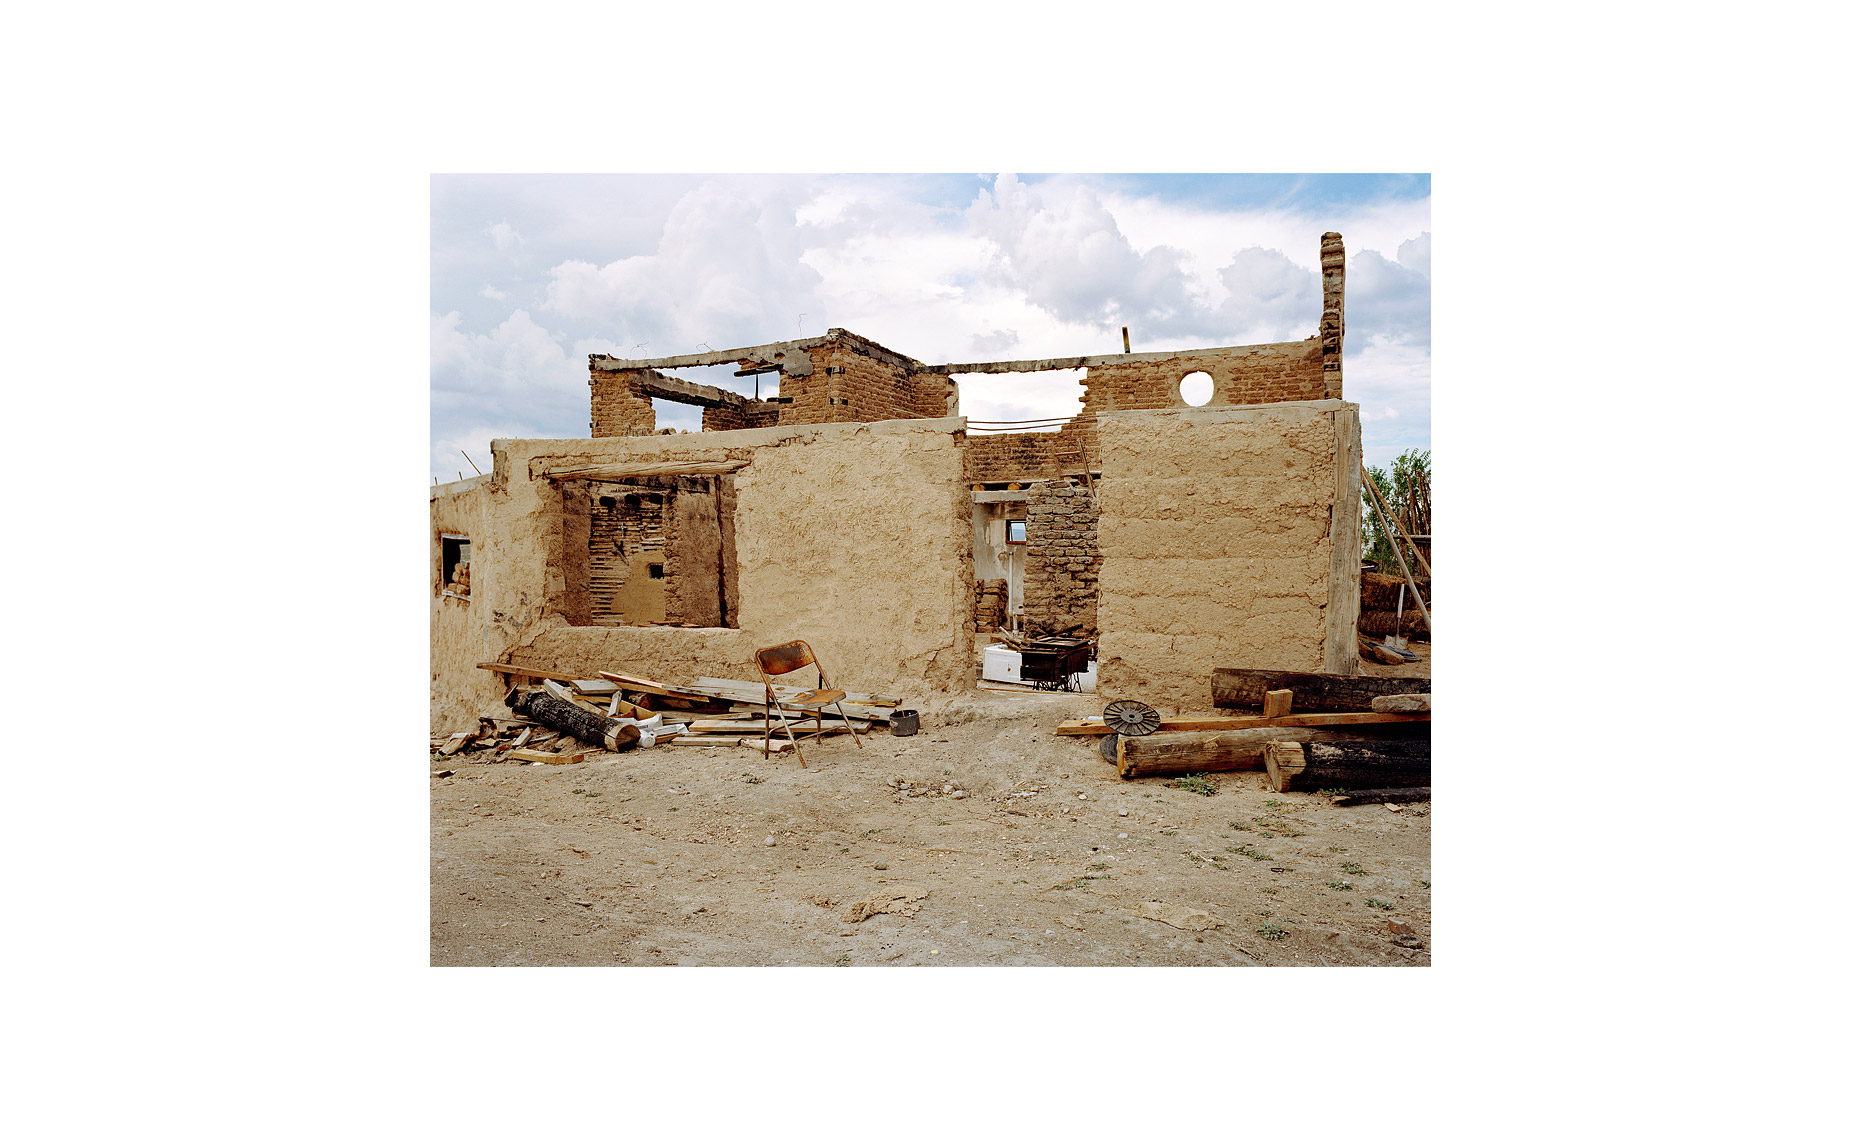 This Was What There Was | Romero Property. Llano Quemado. Taos, New Mexico. Septermber 2005